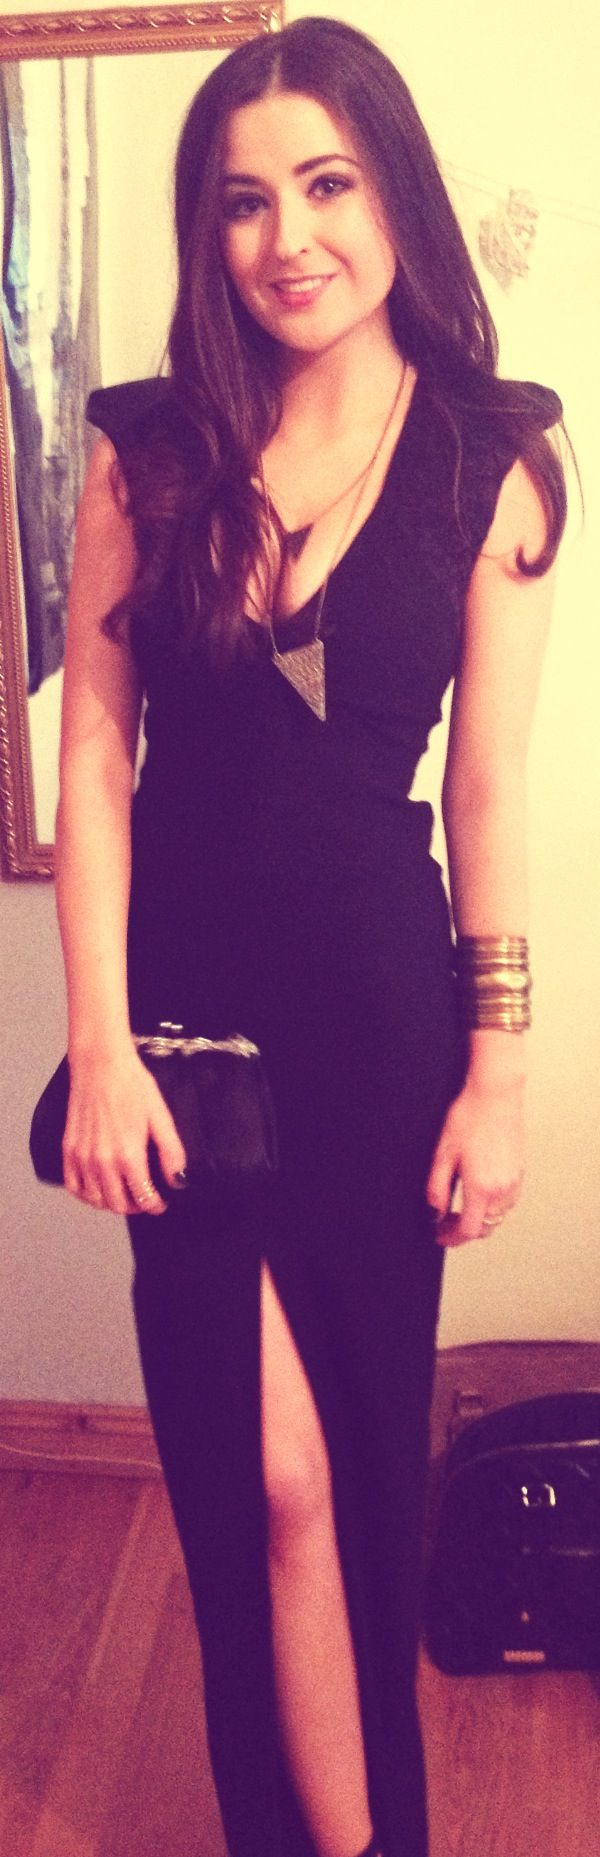 Loved wearing this floor length vesper dress to the ball x